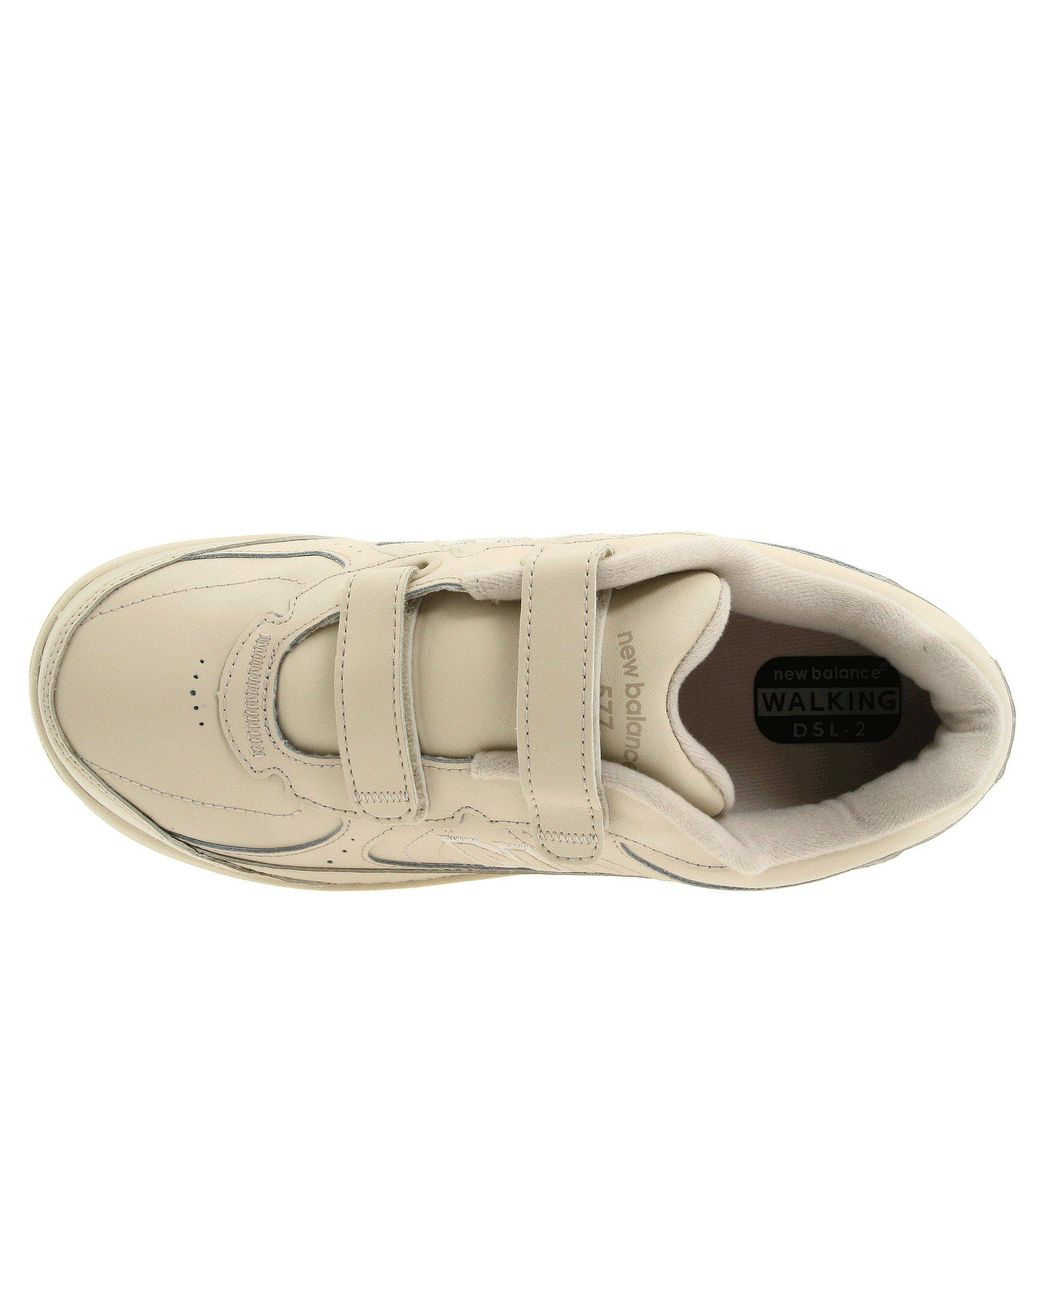 New Balance Leather Ww577 Hook And Loop